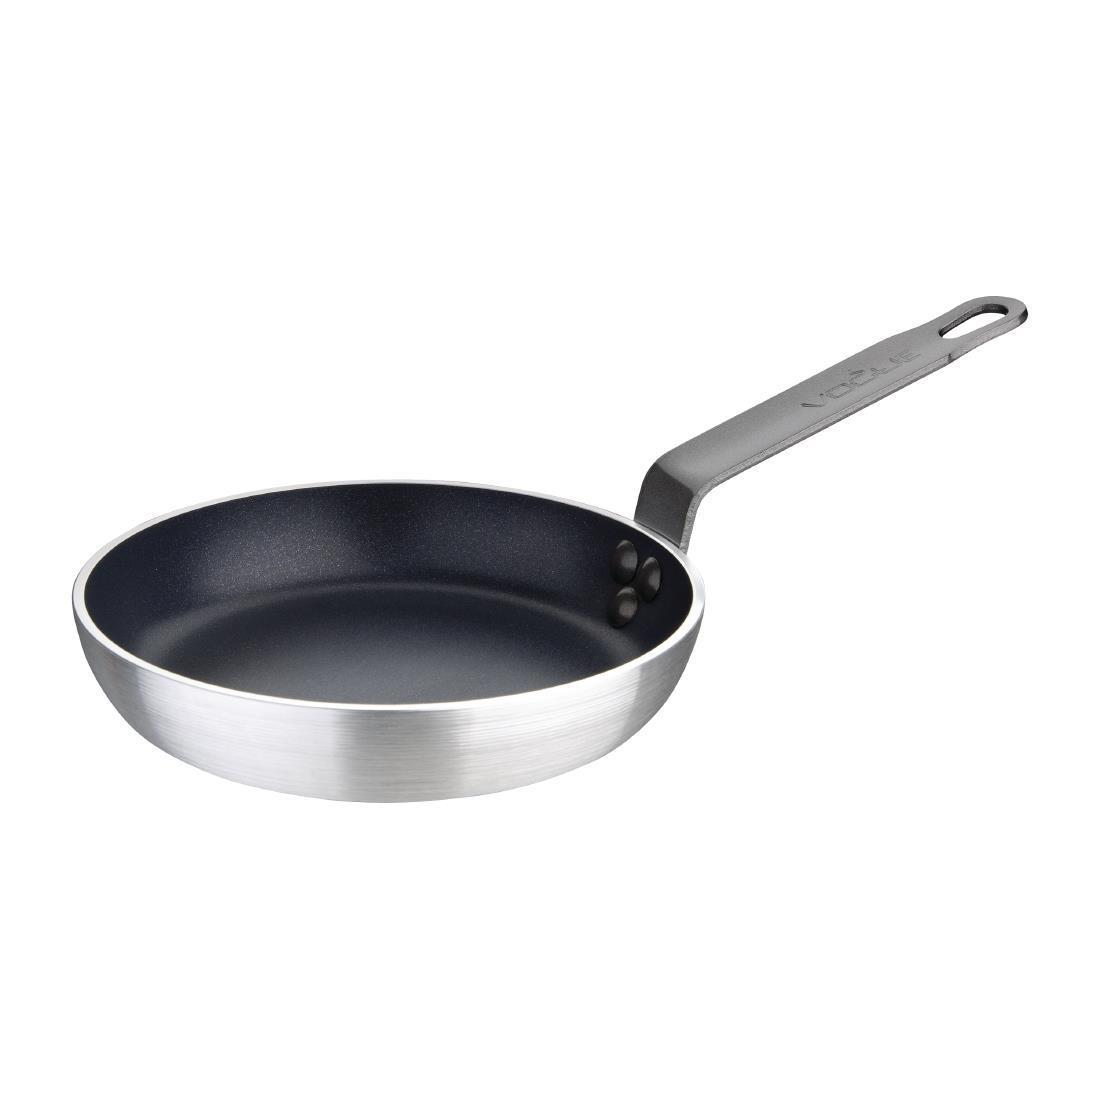 Vogue Non Stick Teflon Aluminium Frying Pan 200mm - S341